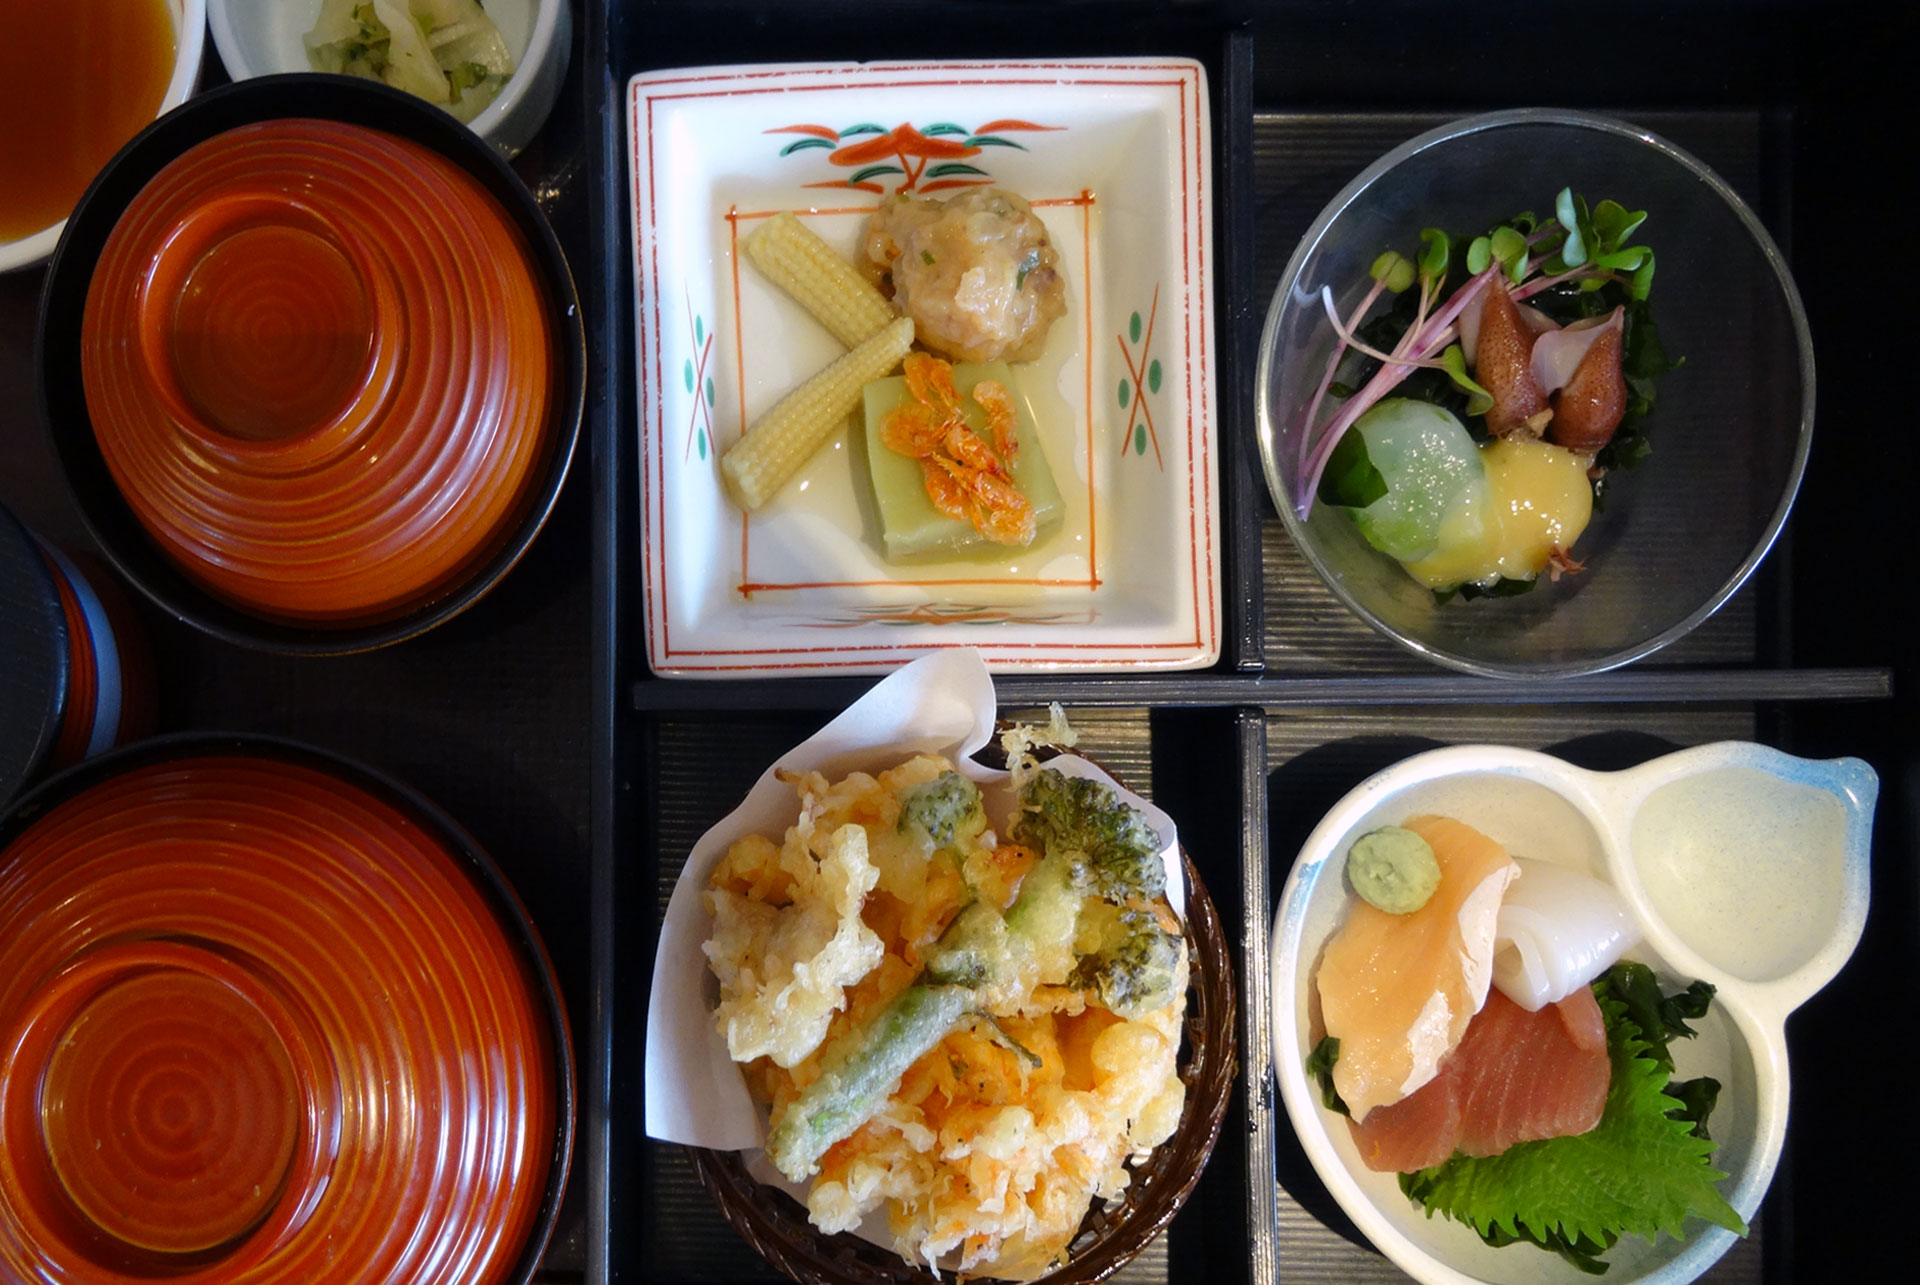 Kyoto lunch set